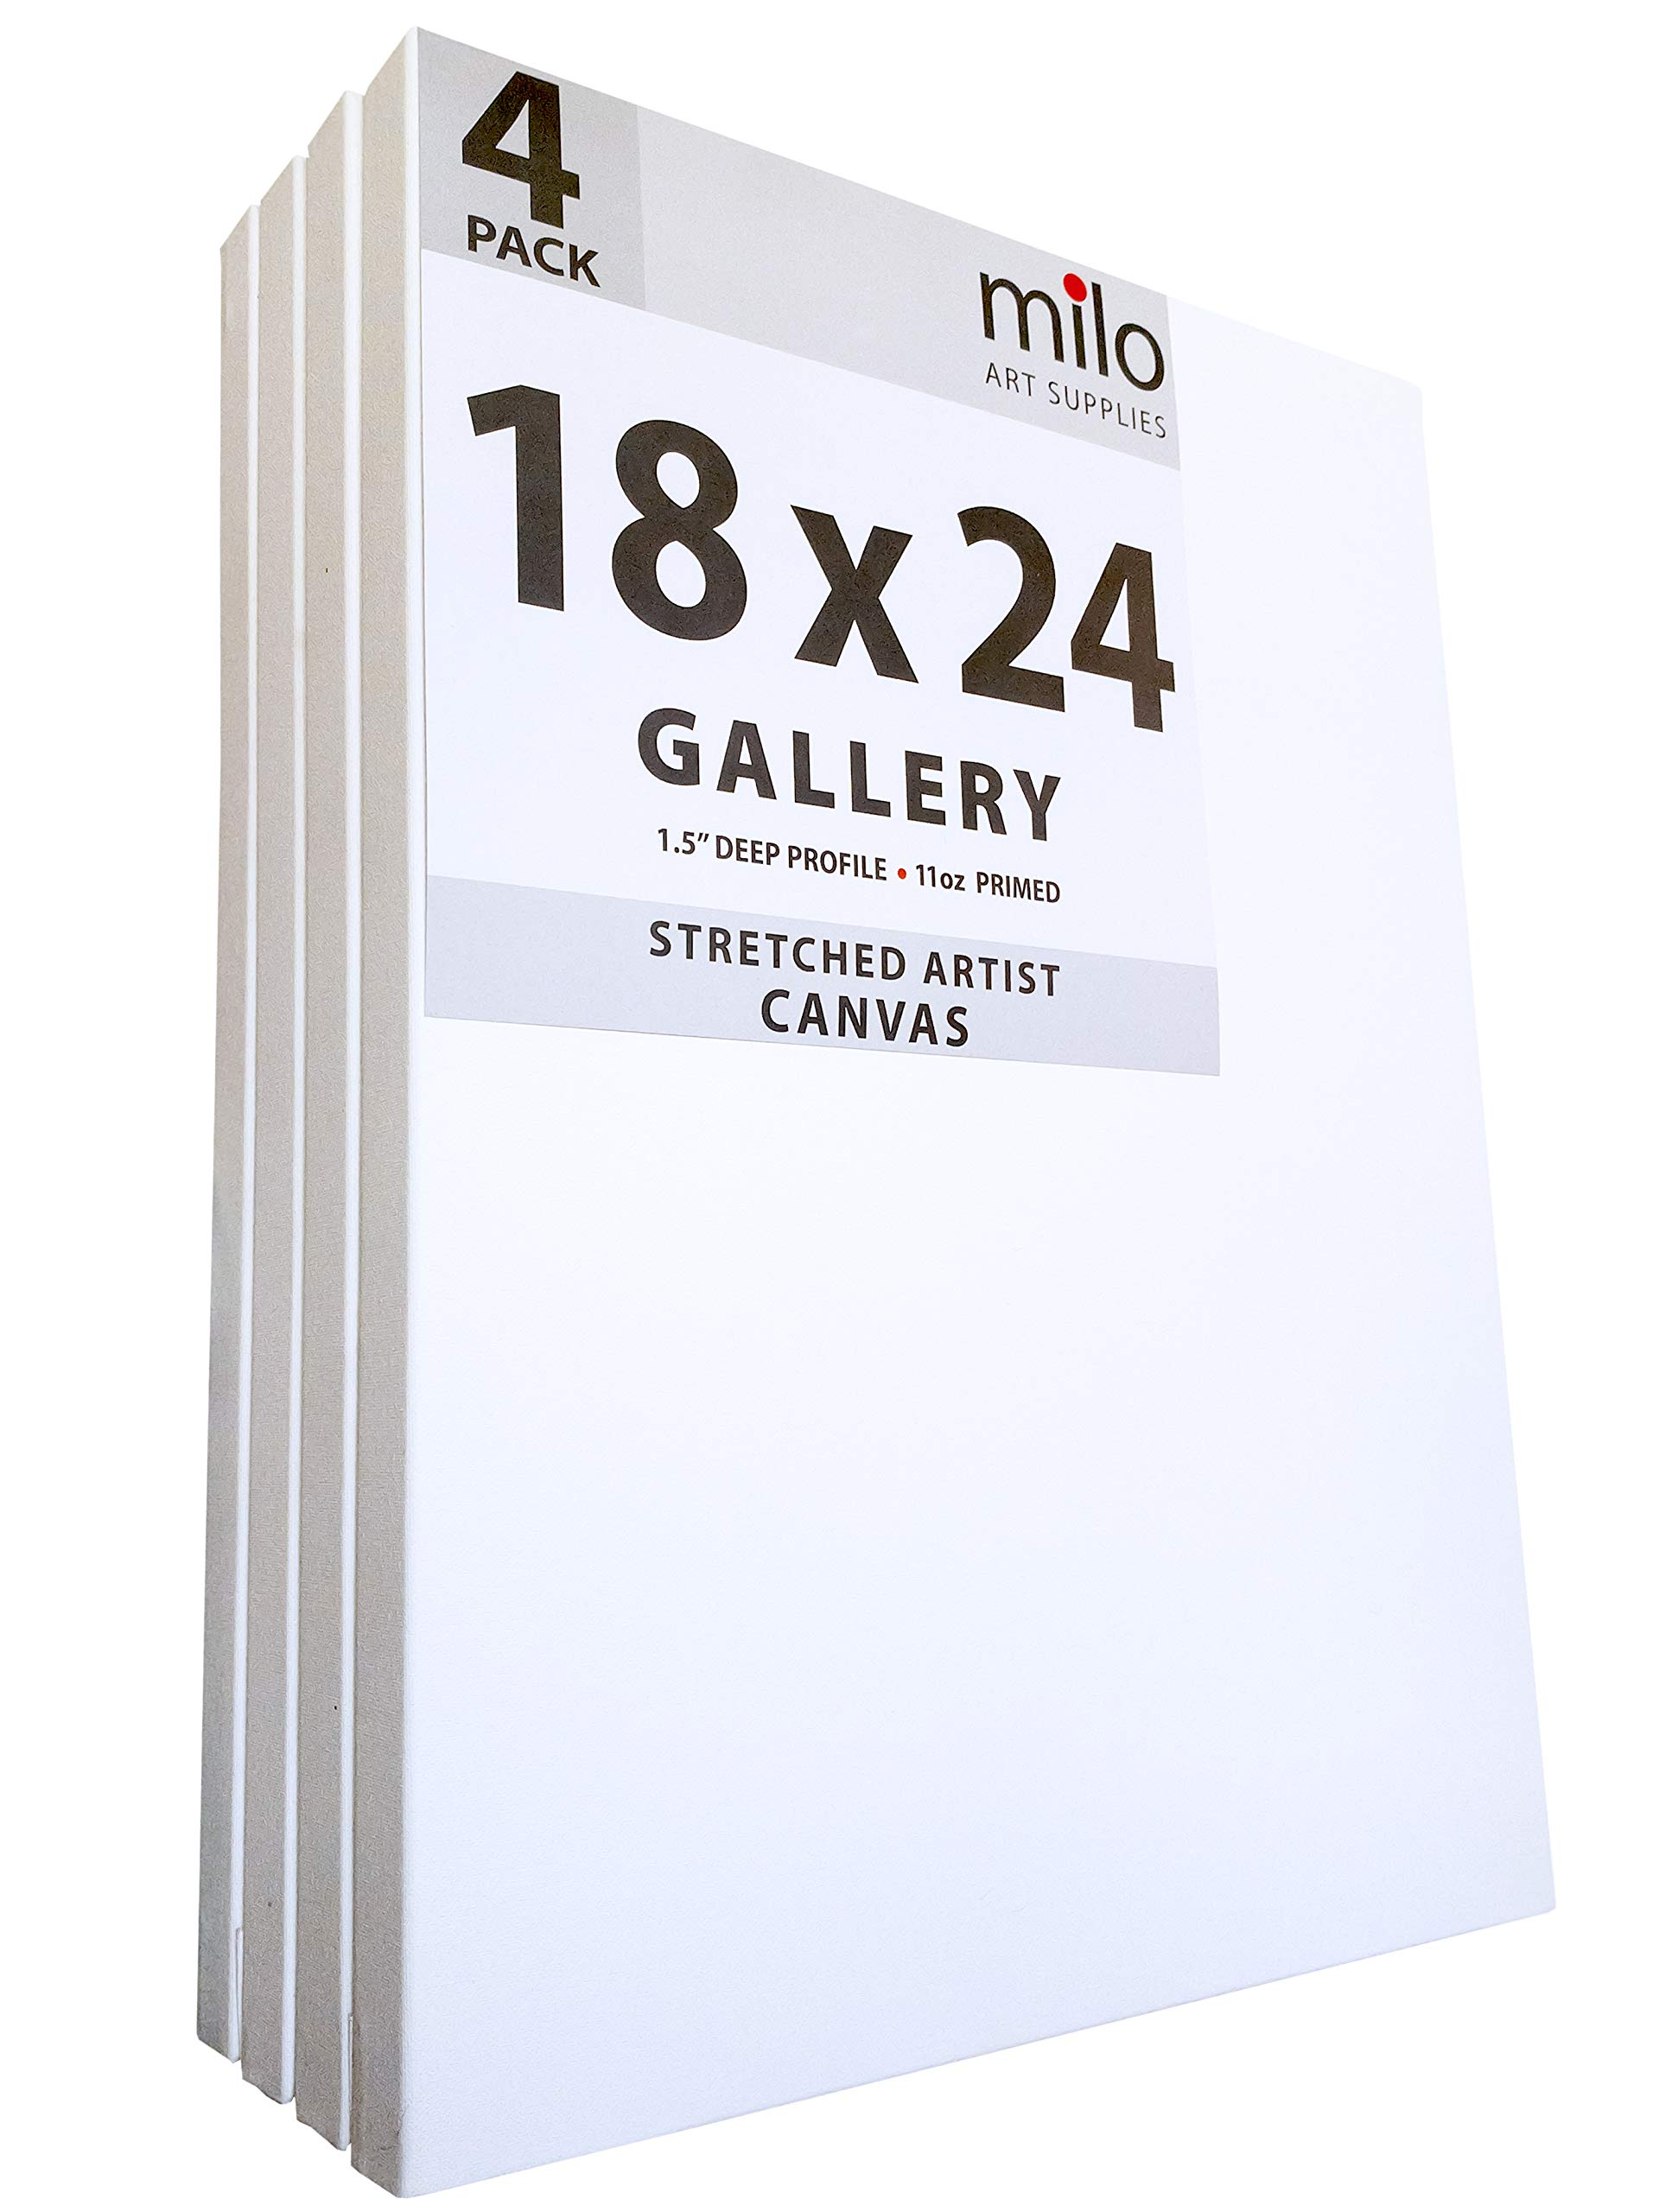 MILO PRO | 18 x 24'' Stretched Canvas Pack of 4 | 1.5'' inch Deep Gallery Profile | 11 oz Primed Large Professional Artist Painting Canvases | Ready to Paint White Blank Art Canvas Bulk Set by milo